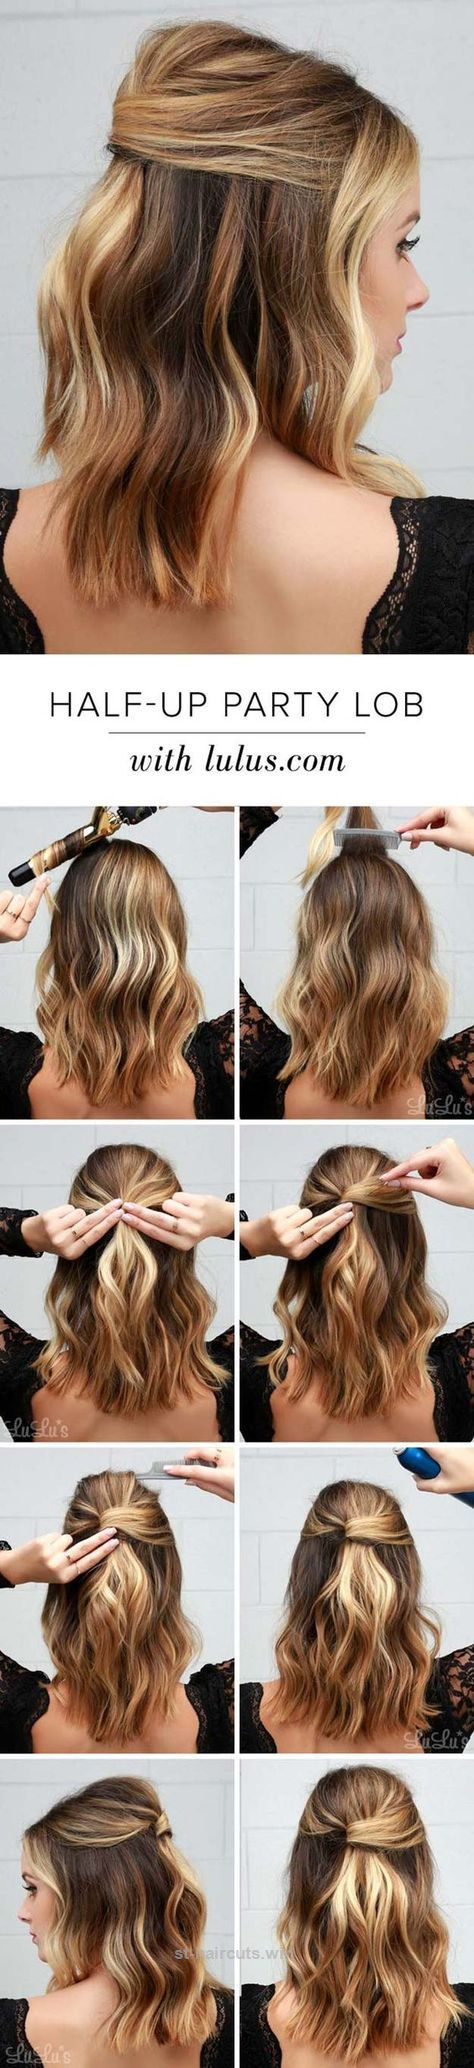 Cool and easy diy hairstyles half party lob quick and easy ideas